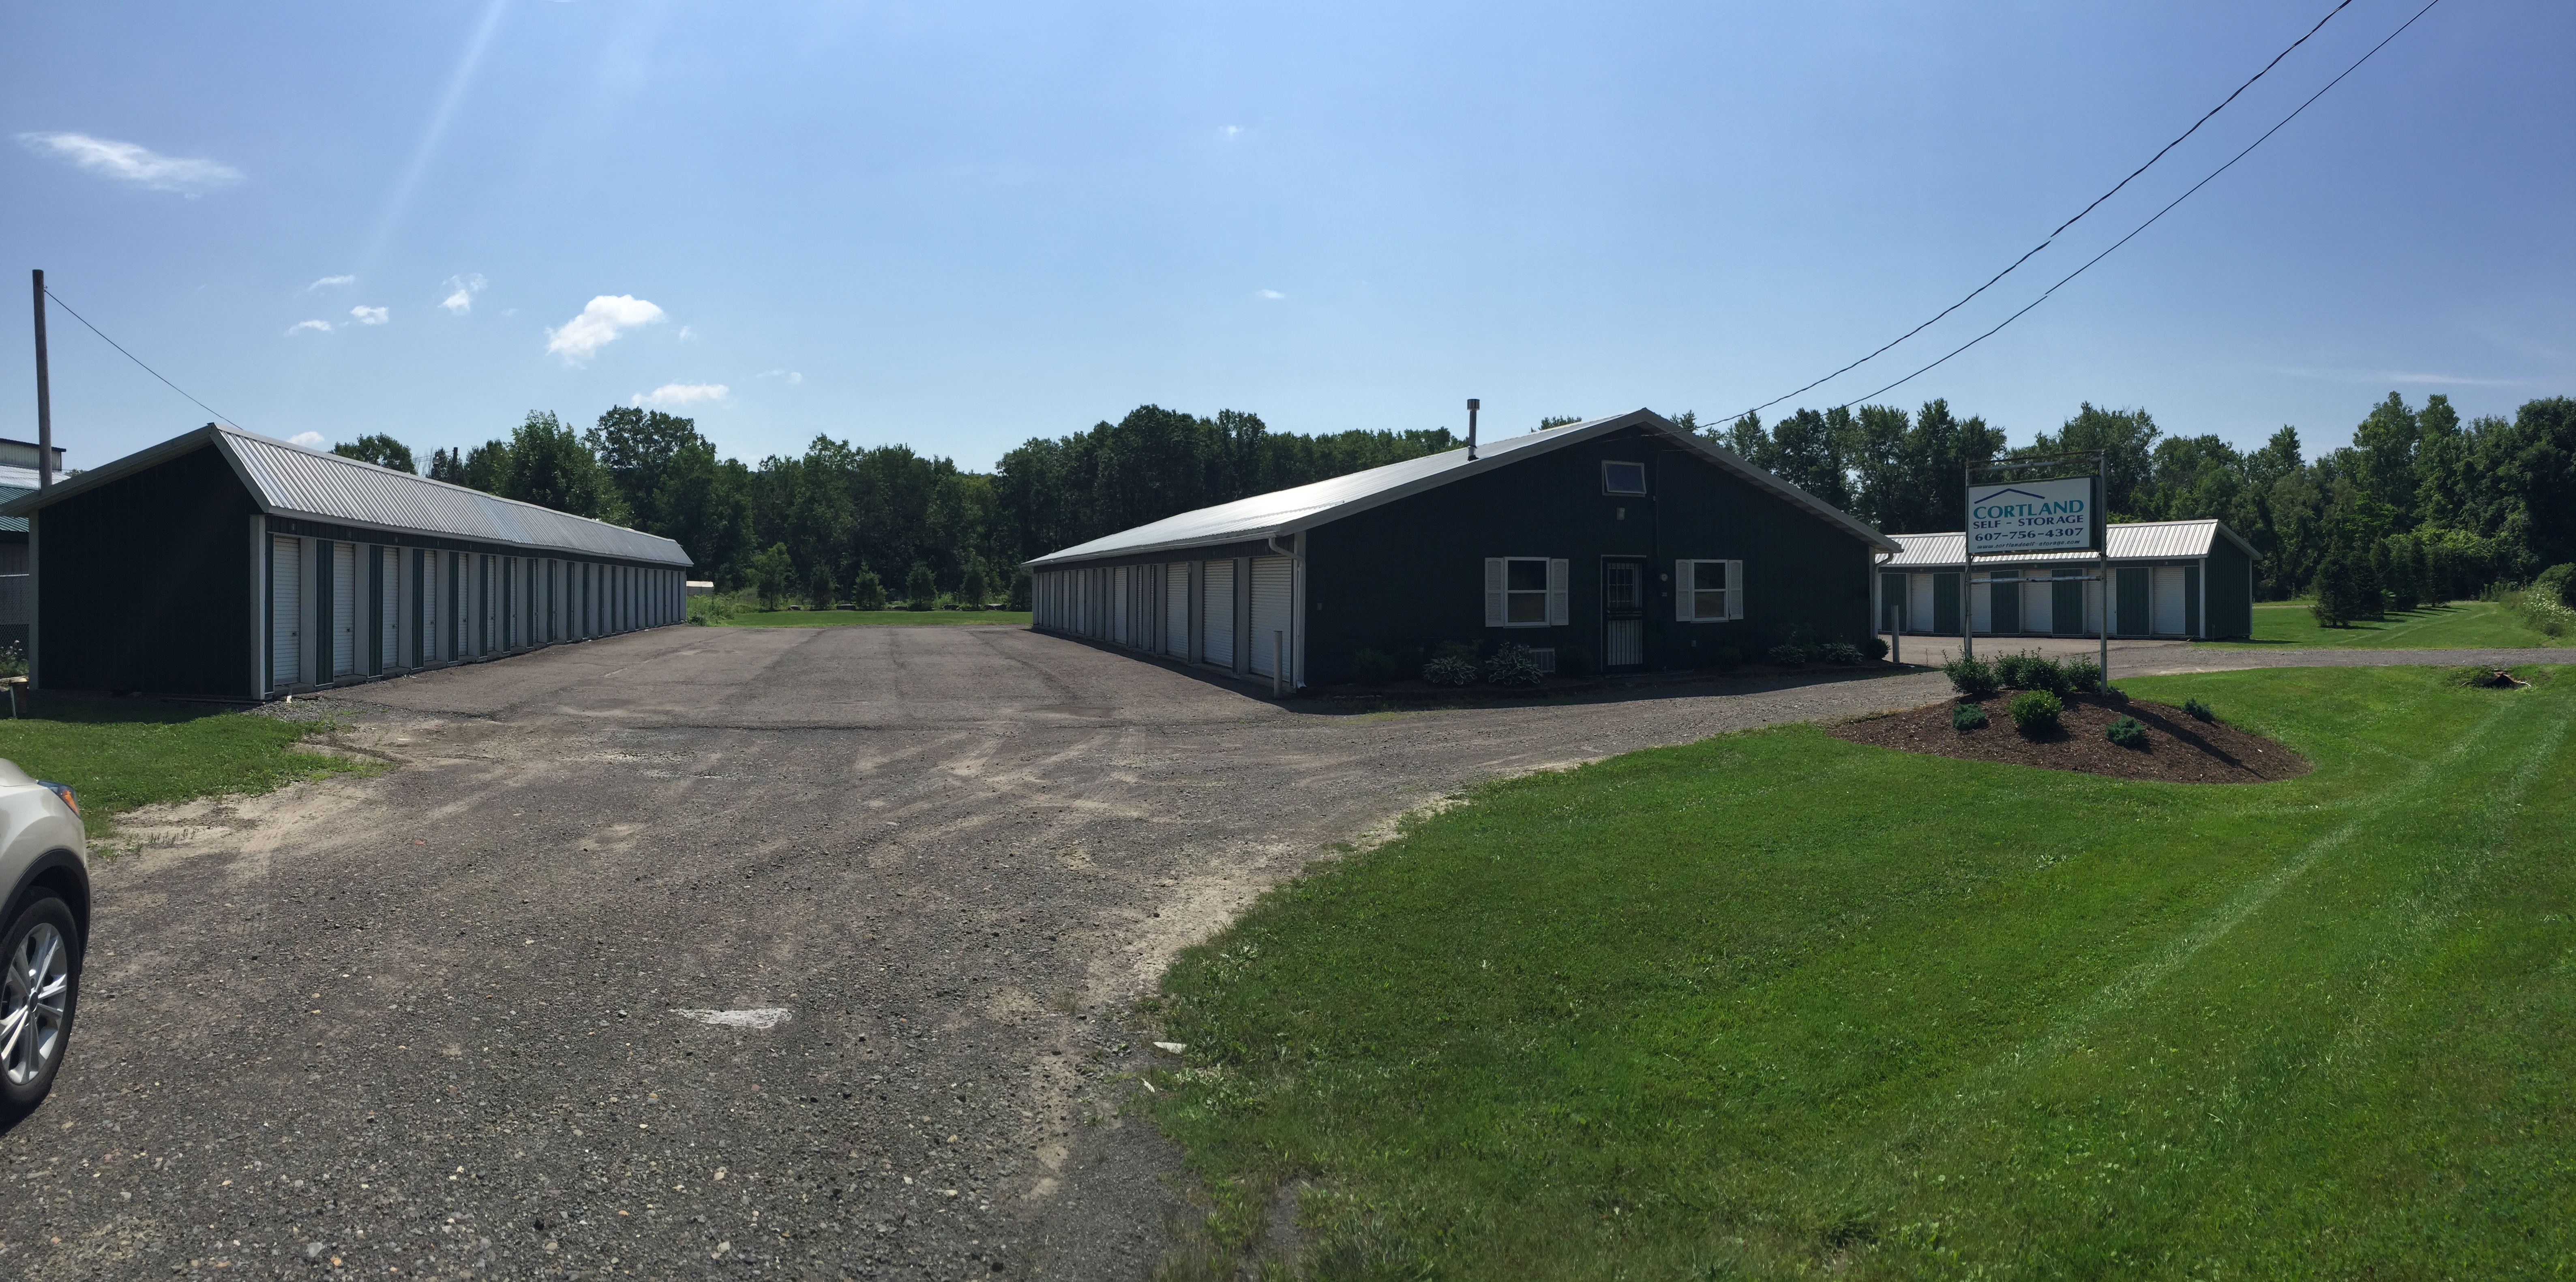 Storage in Cortland, NY